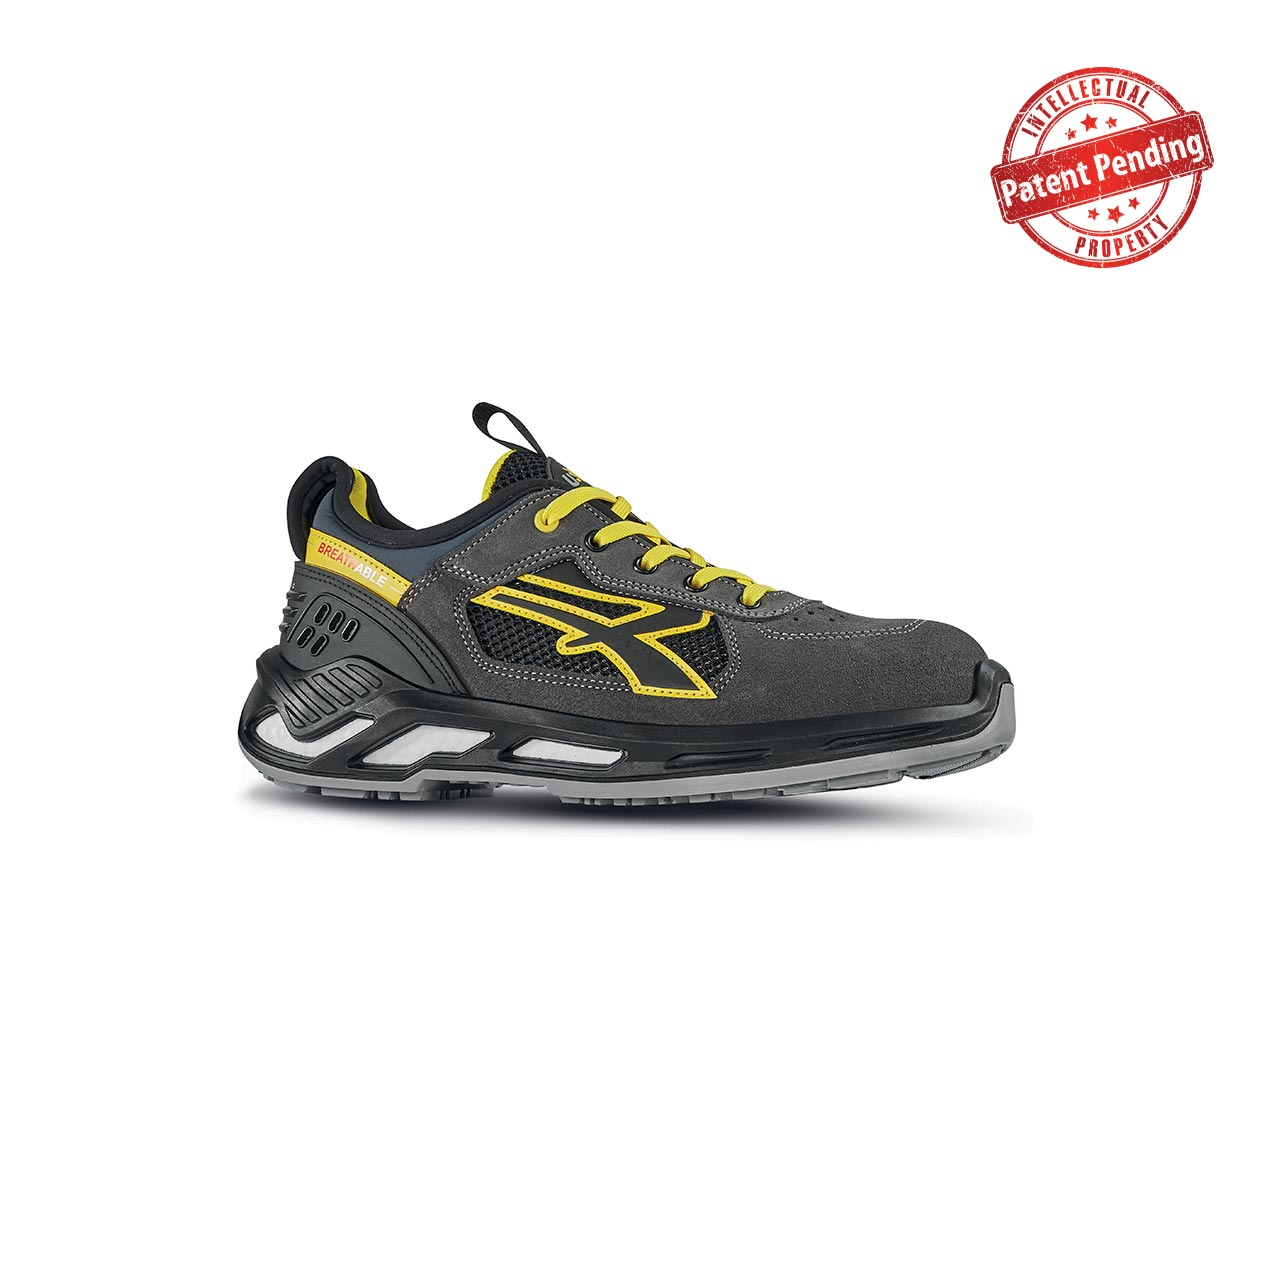 scarpa antinfortunistica upower modello sniper linea red360 vista laterale